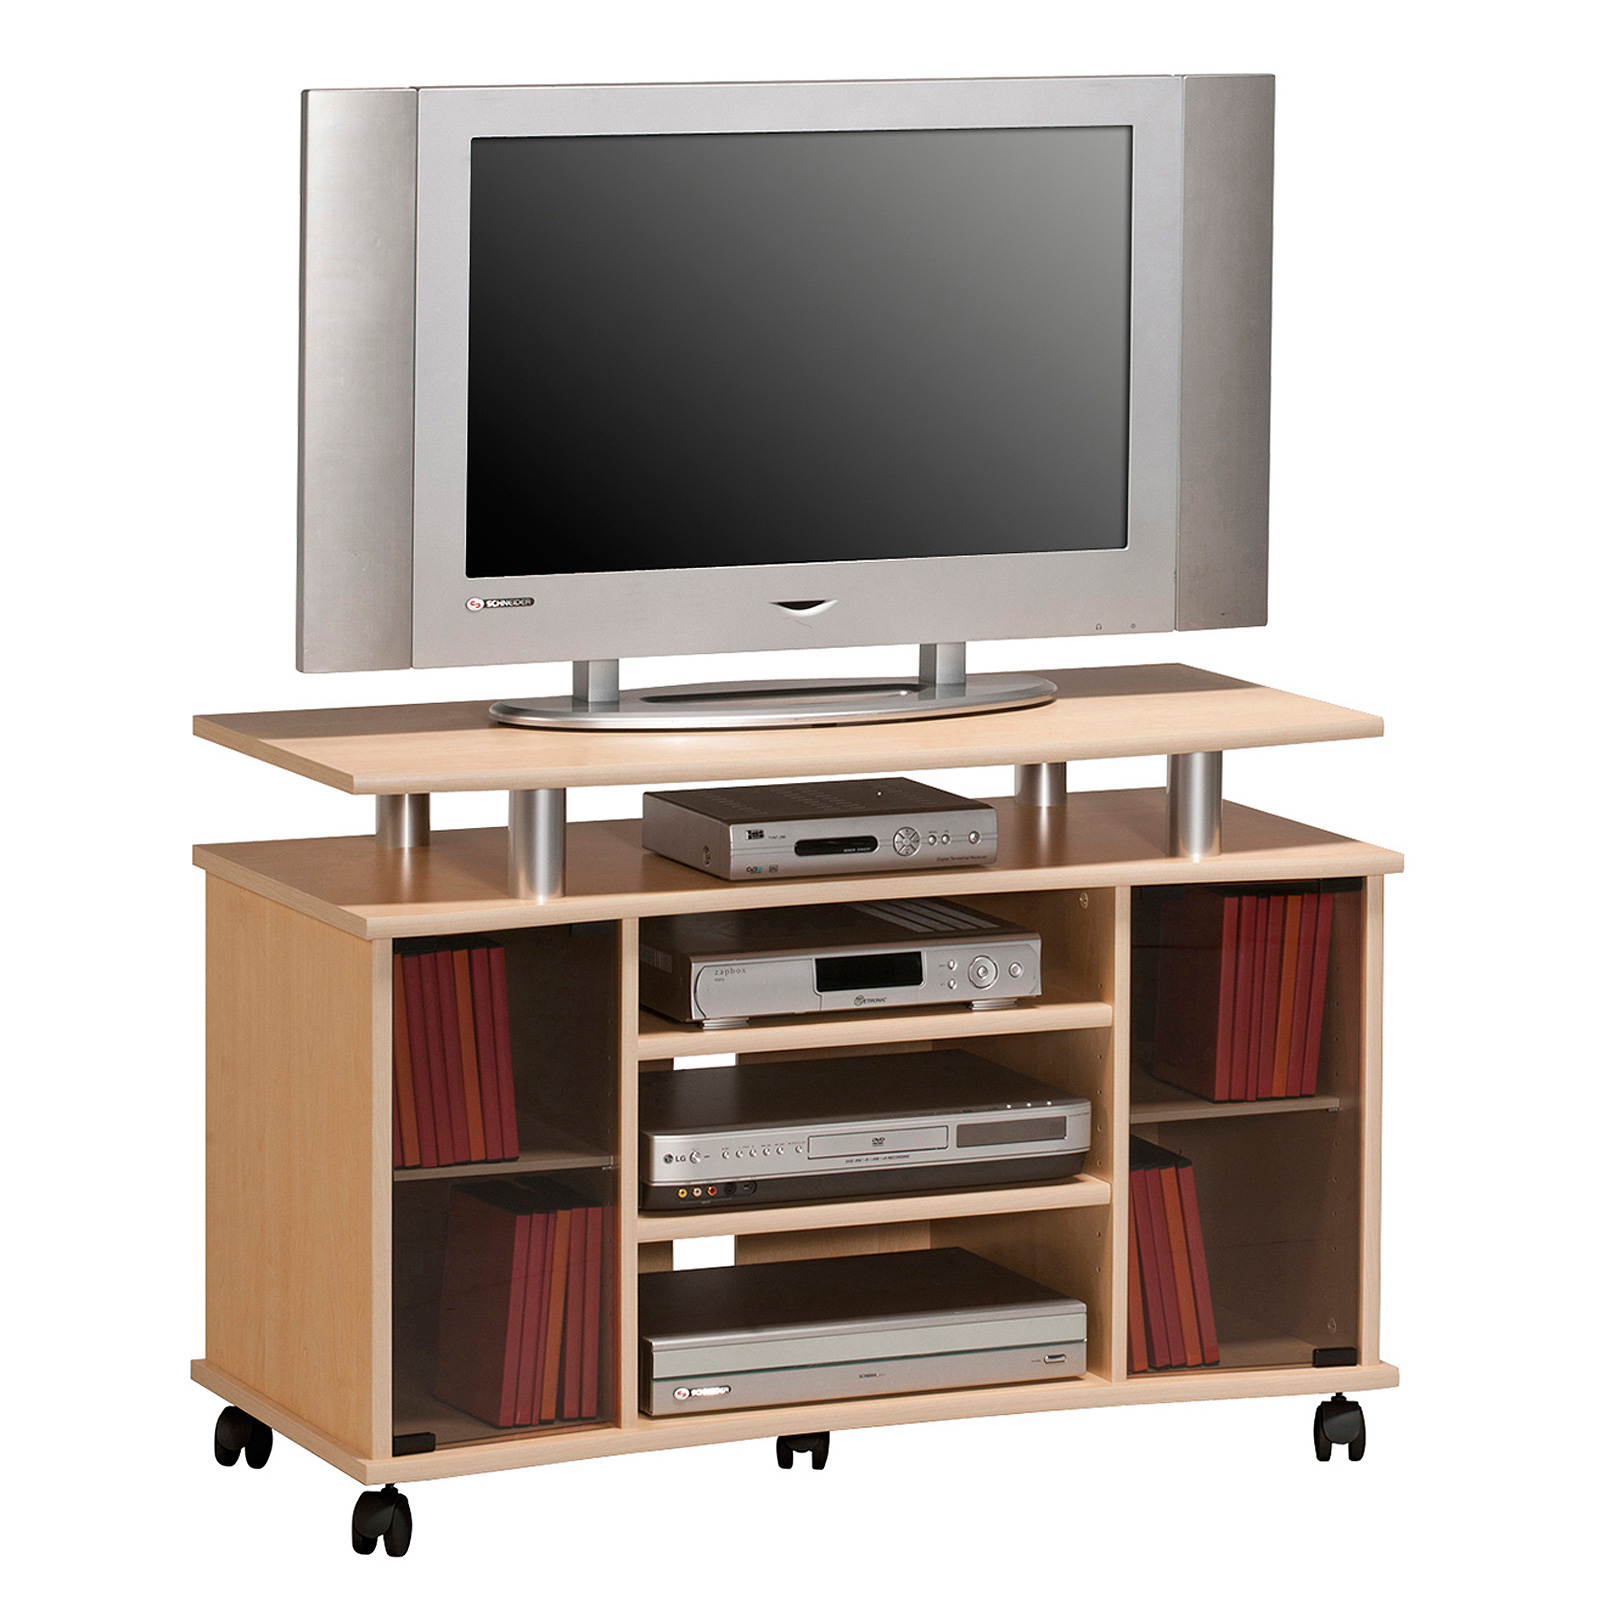 tv rack maja 7362 tv board tv schrank mediam bel als. Black Bedroom Furniture Sets. Home Design Ideas